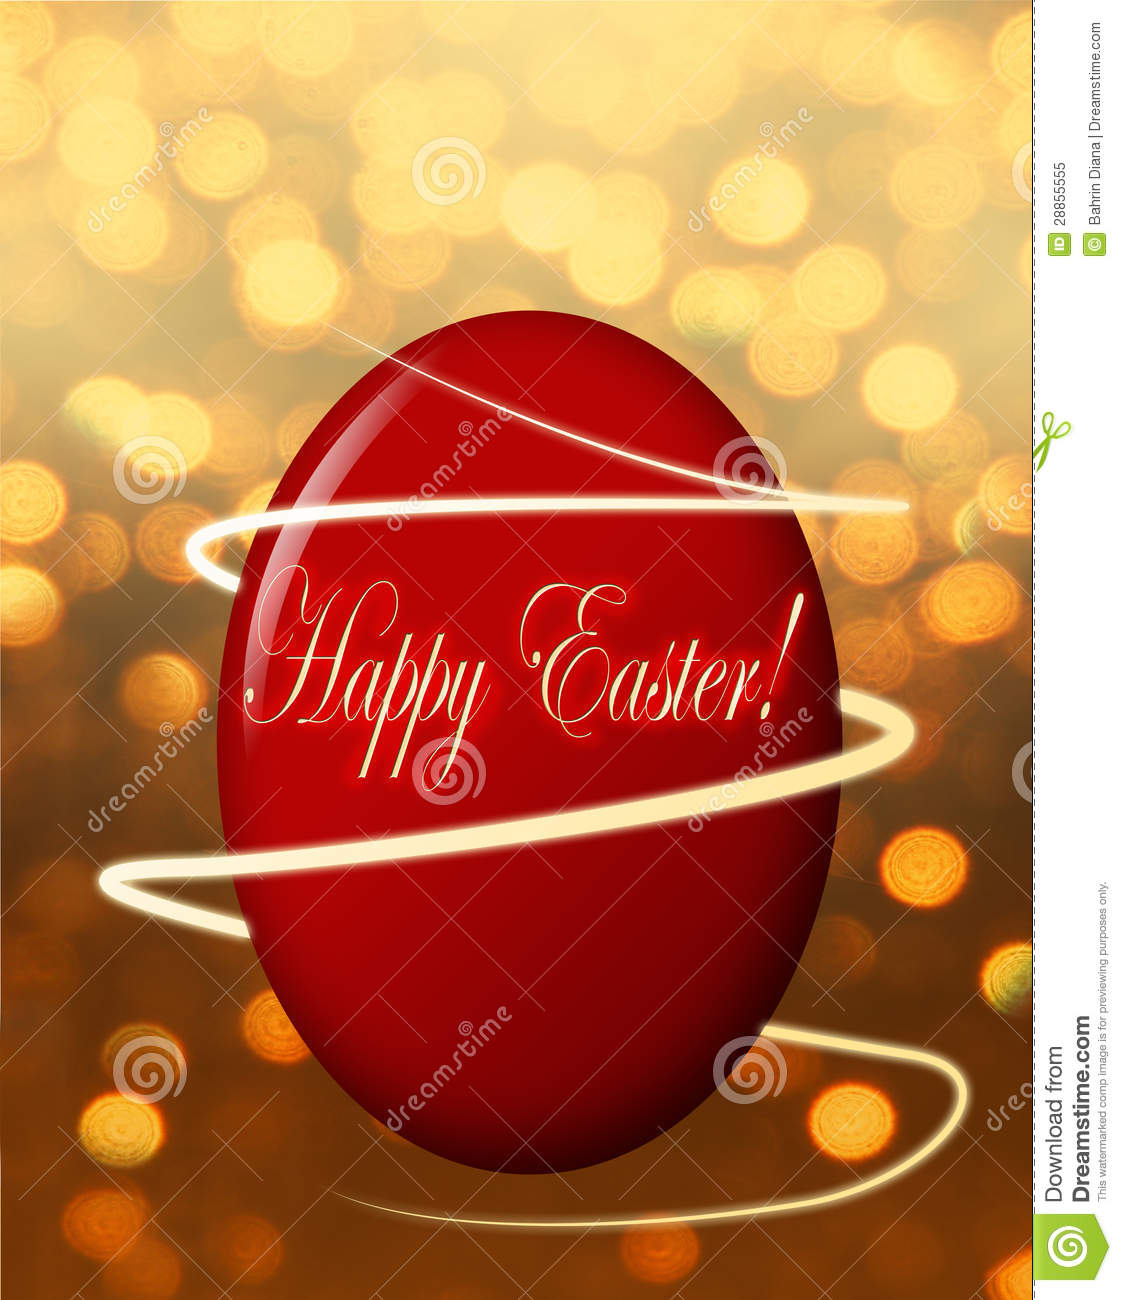 All You Can Eat At Seoul Garden together with 1005745 as well Star Clan C  181772148 likewise Royalty Free Stock Photo Happy Easter Card Image28855555 together with Chakra Portal 3. on sparkling drawing